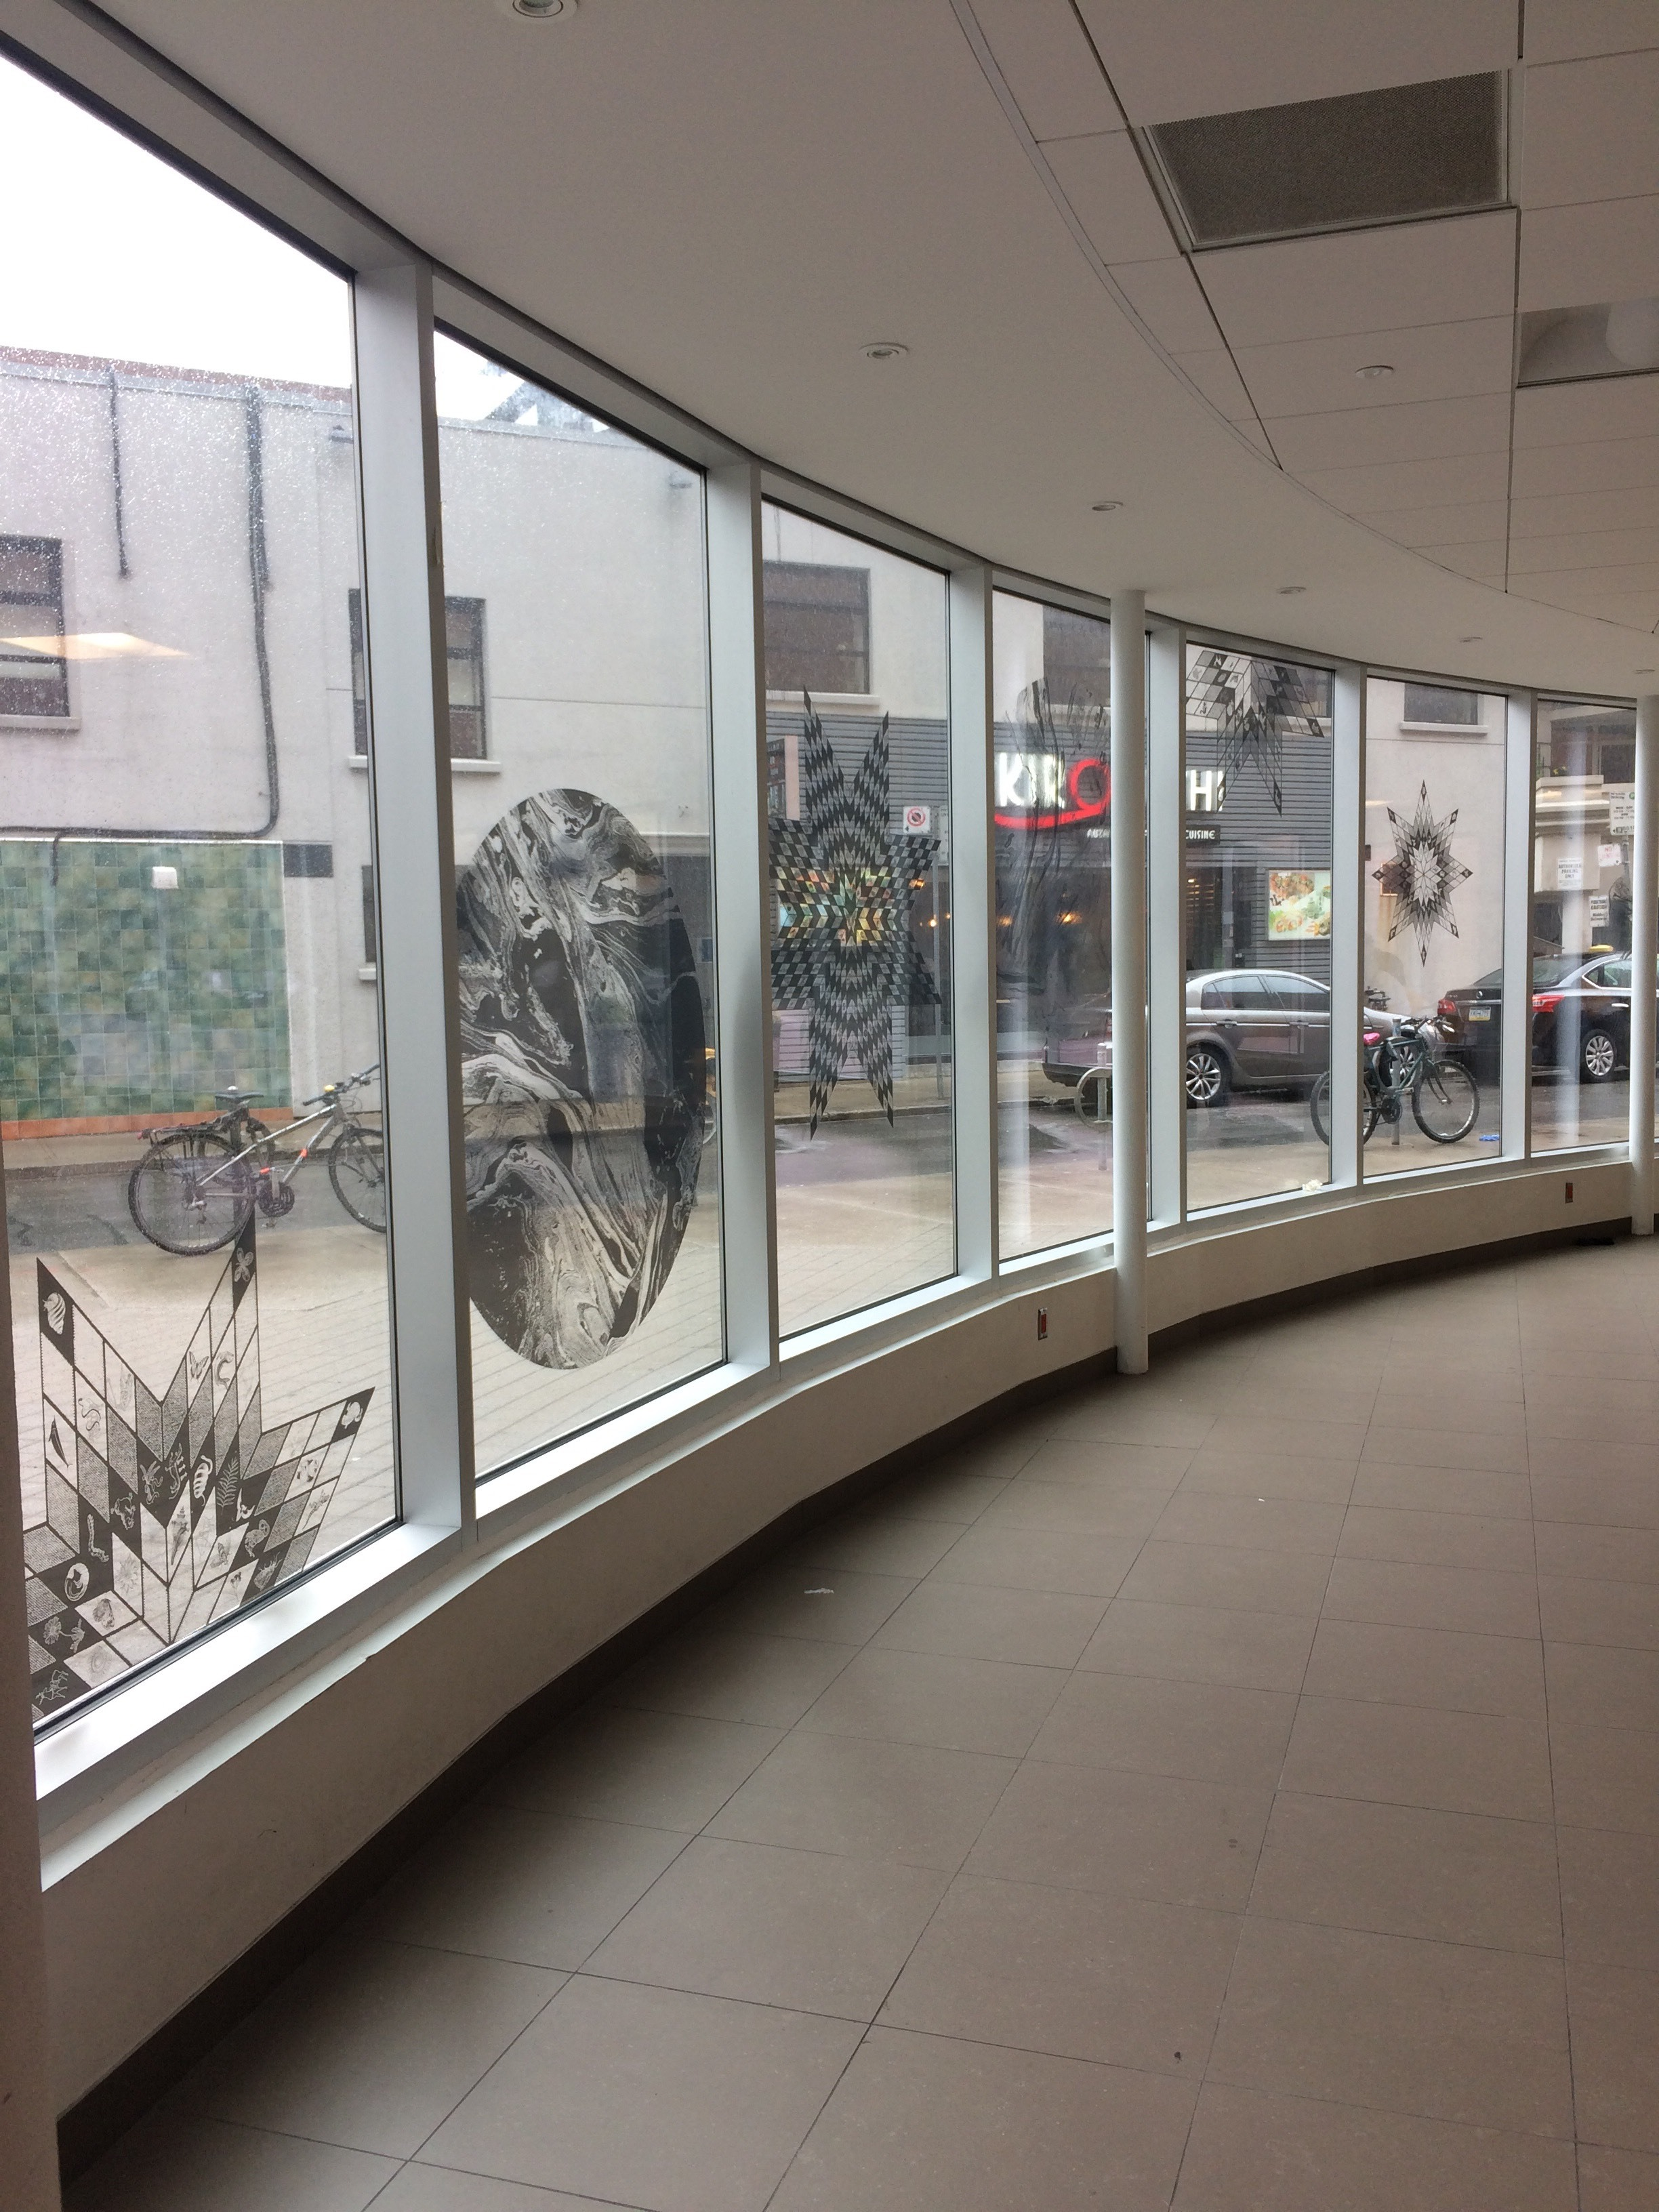 Wandering Star  window vinyl installation  the Browsery at Toronto Reference Library, Toronto  spread across window area of 8ft x 60ft  2019